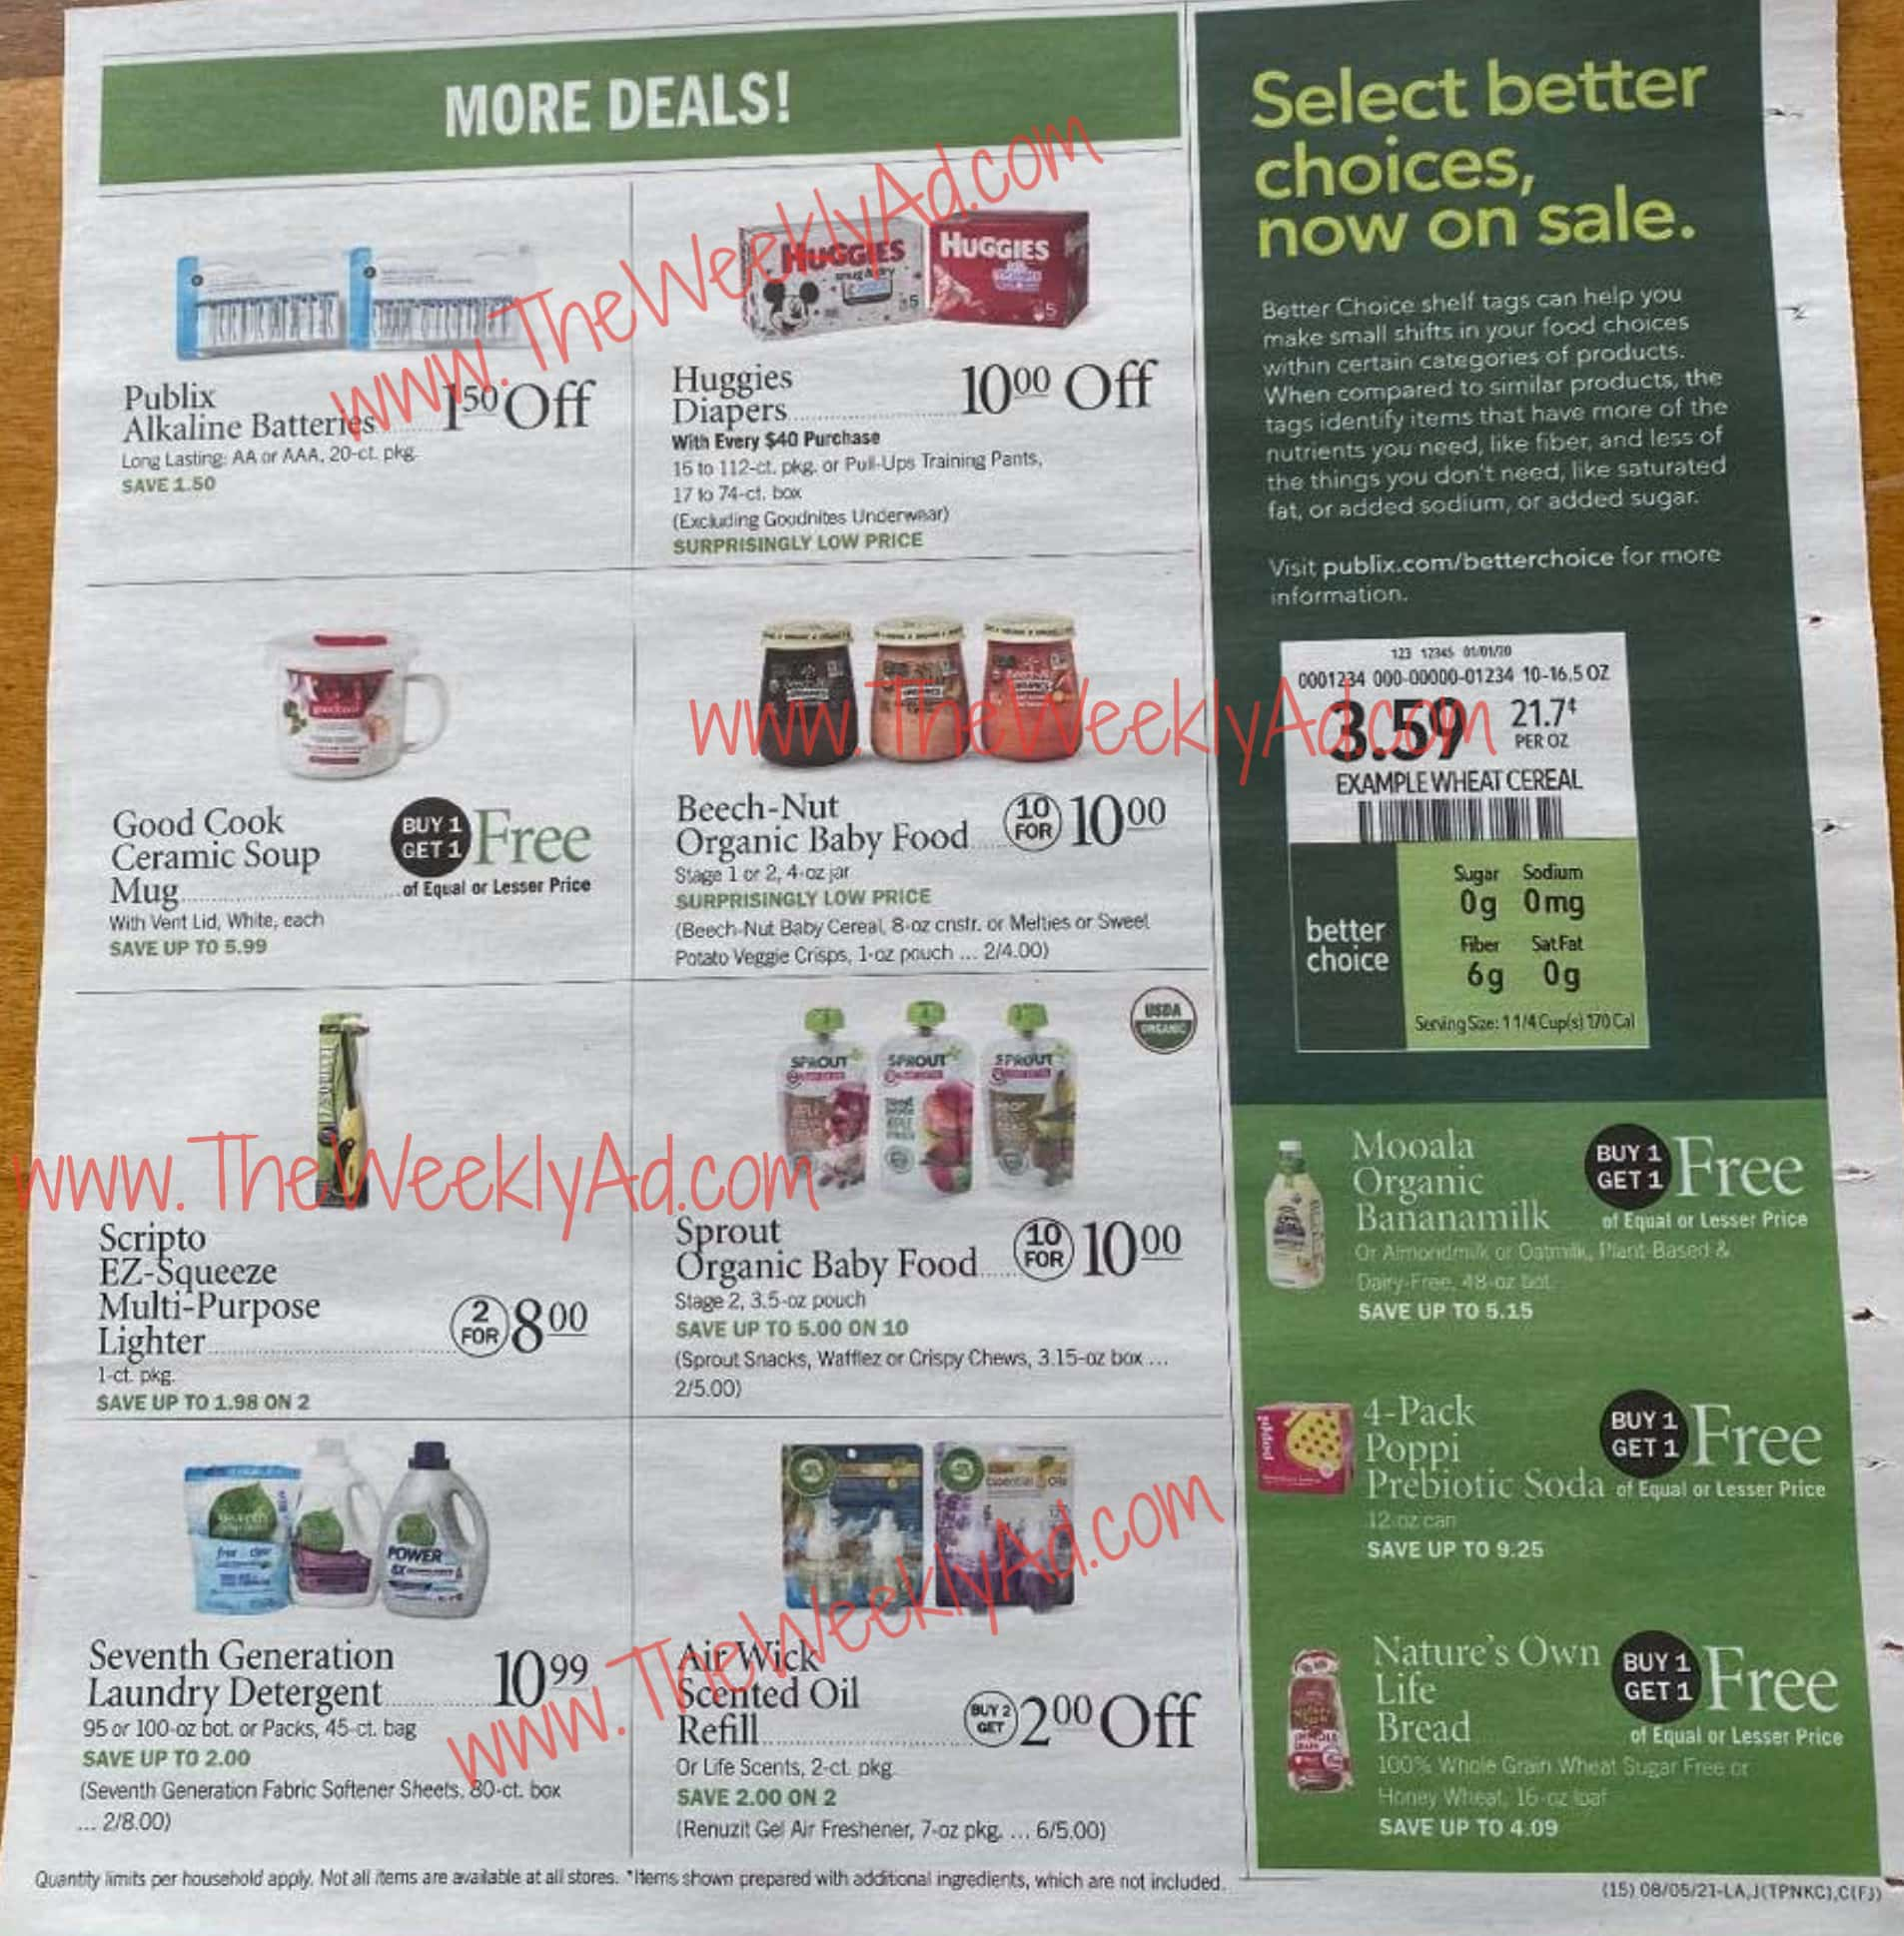 publix_weekly_ad_080421_15